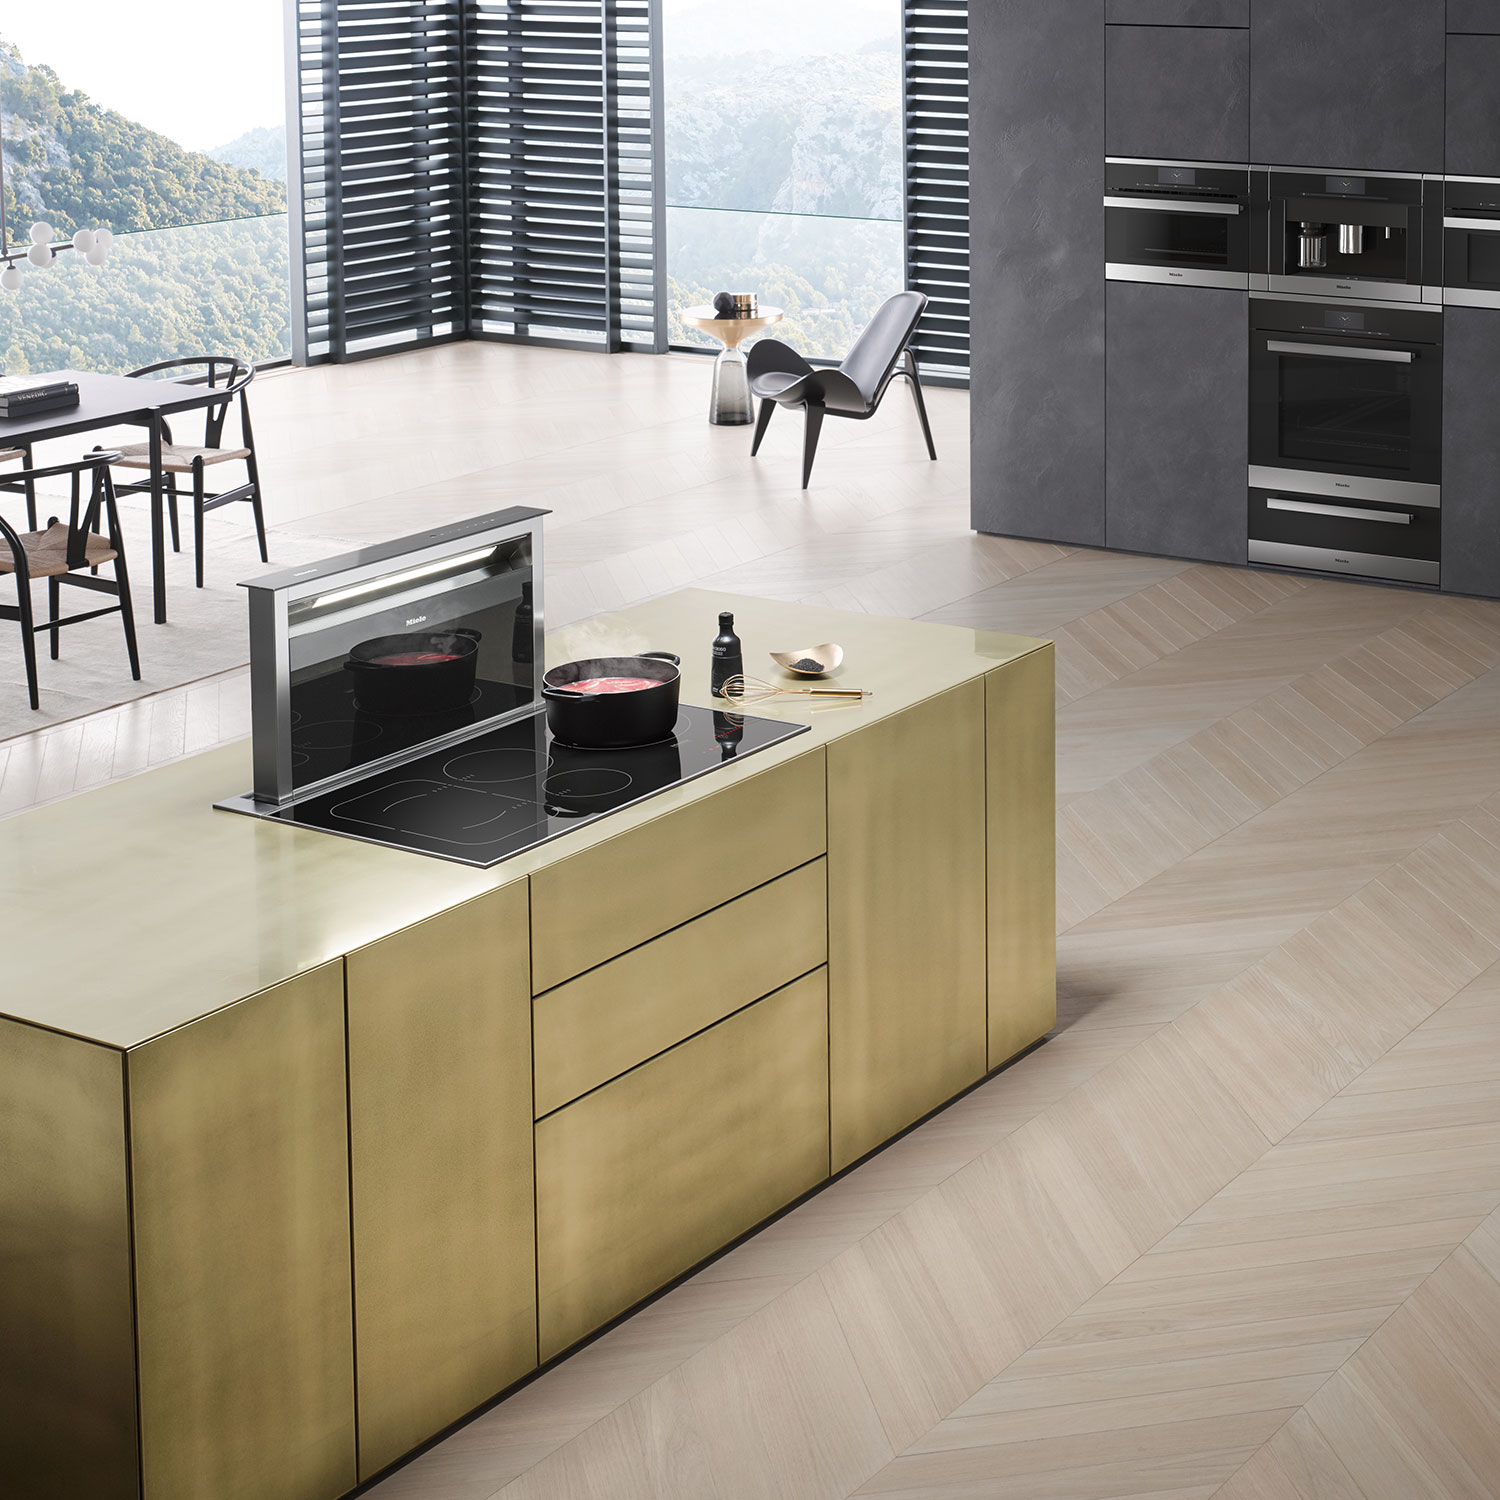 miele-induction-cooktop-01.jpg